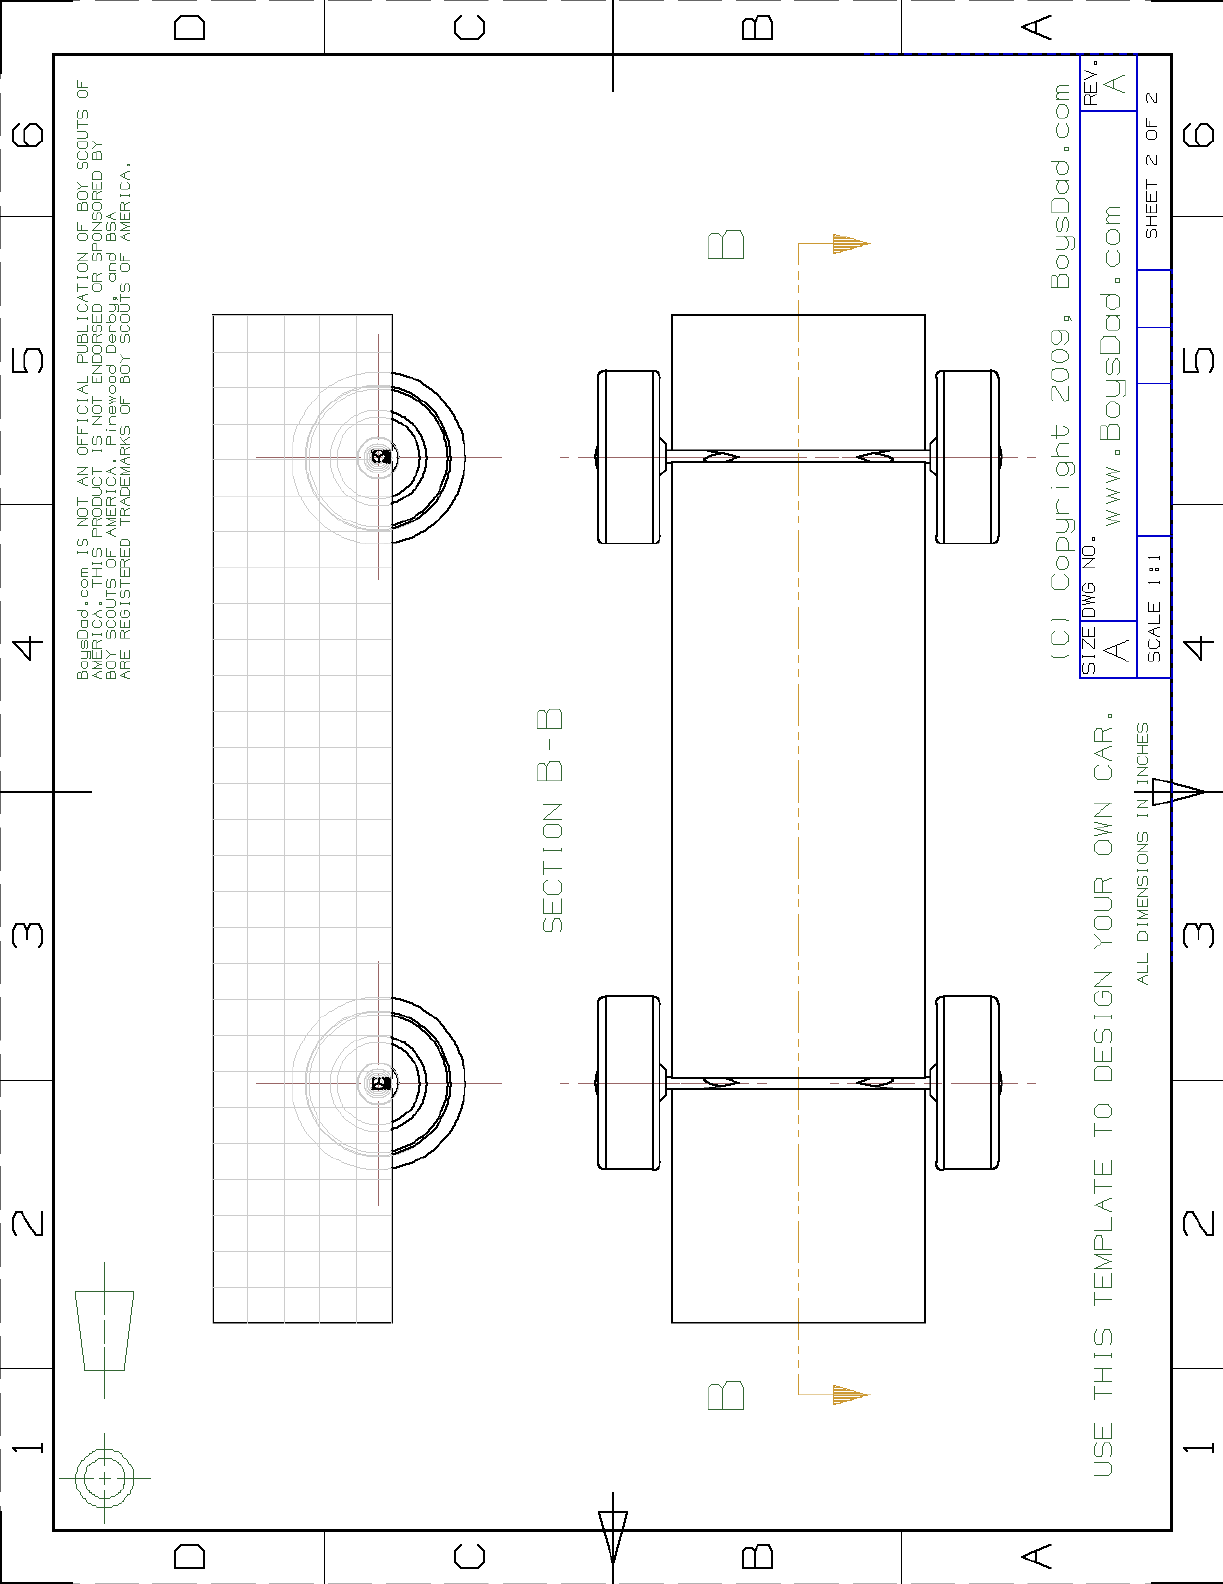 Blank Car Derby Template PDF Format Download | pinewood derby ...